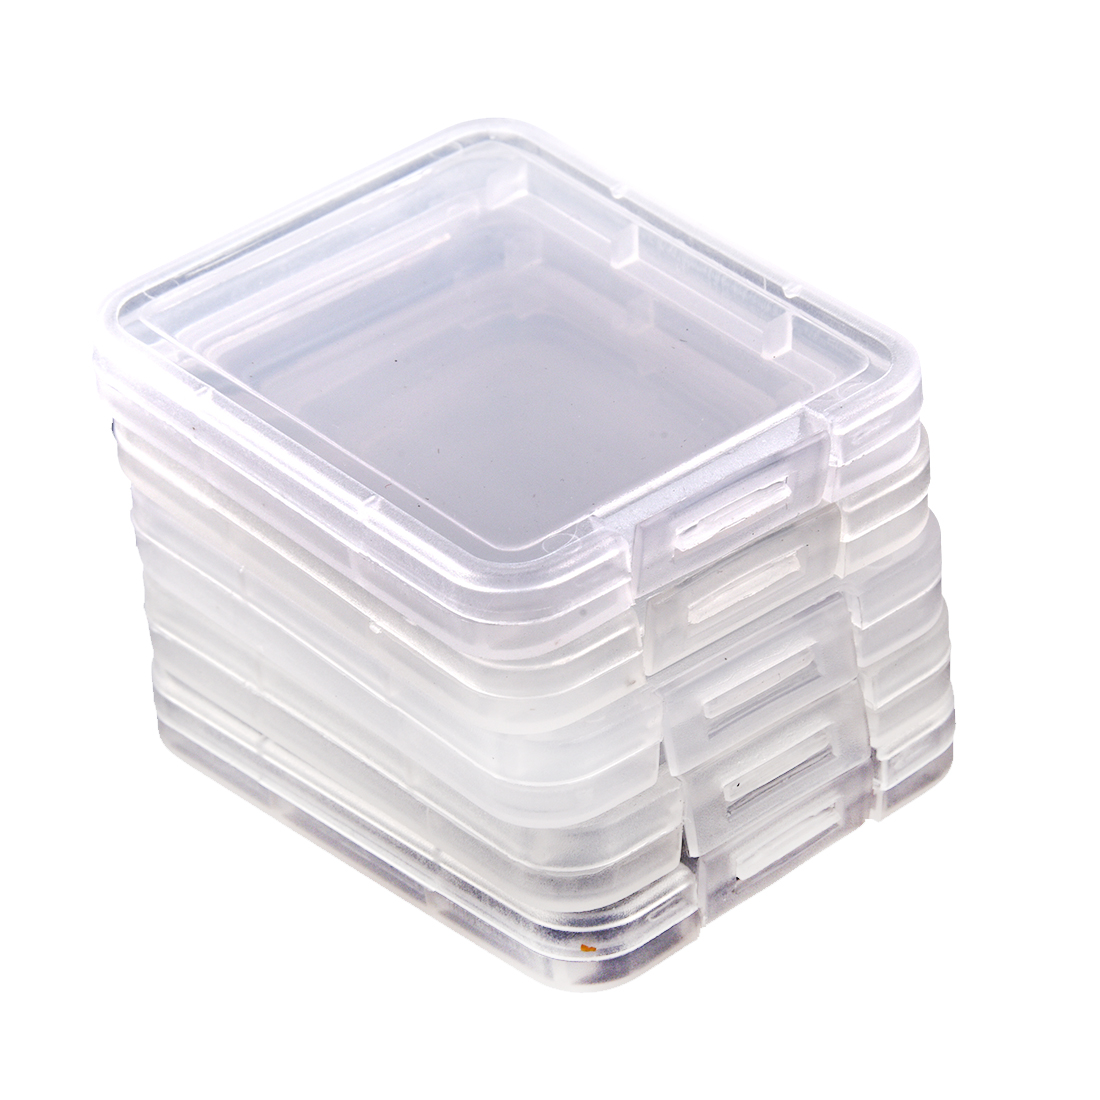 5 Series Memory Card Case Box Protective Case For SD SDHC MMC XD CF Card White Transparent